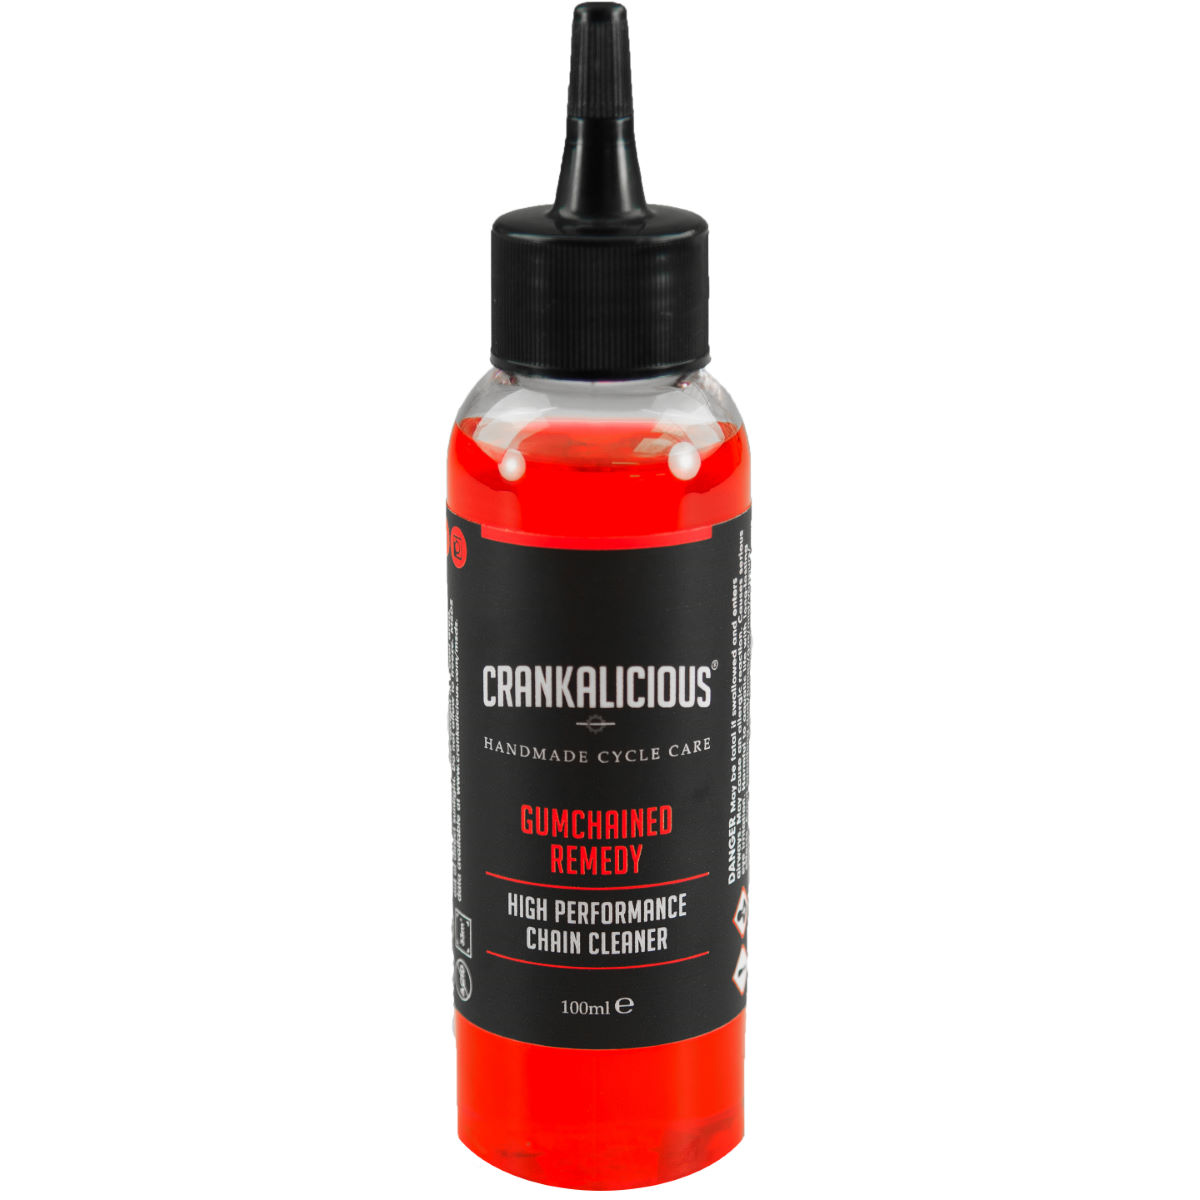 Crankalicious Gumchained Remedy Chain Cleaner - Productos de limpieza